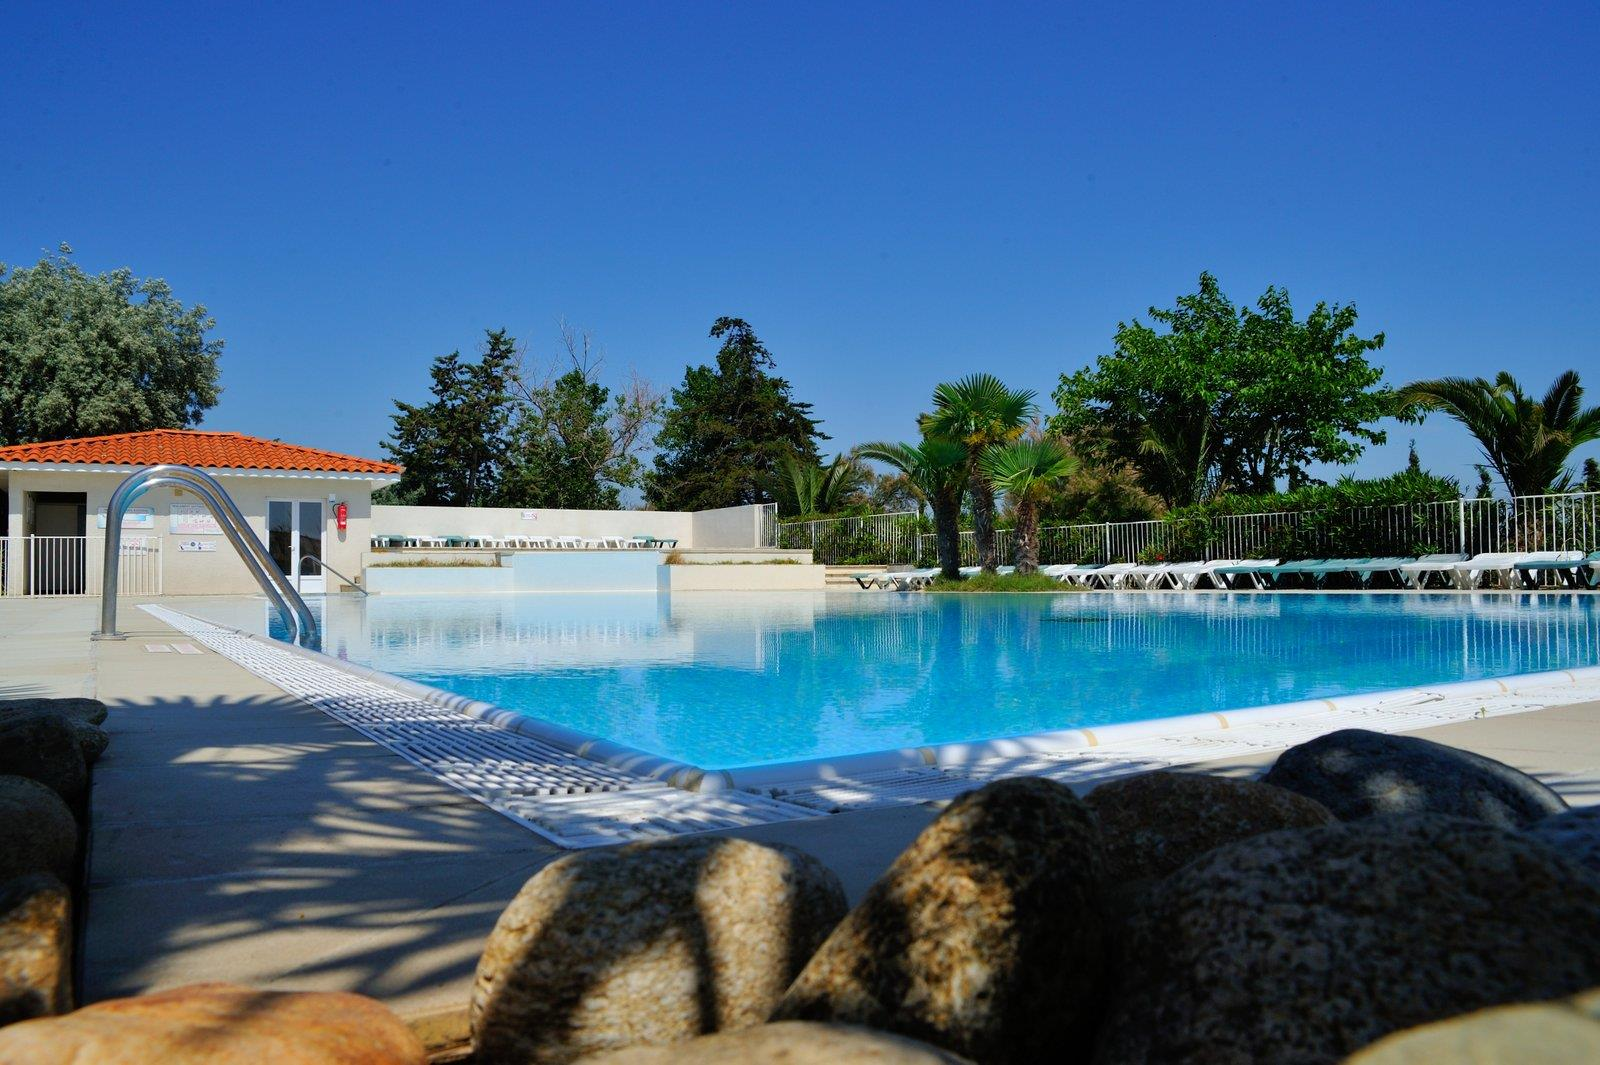 Bathing Camping Les Fontaines - Canet En Roussillon